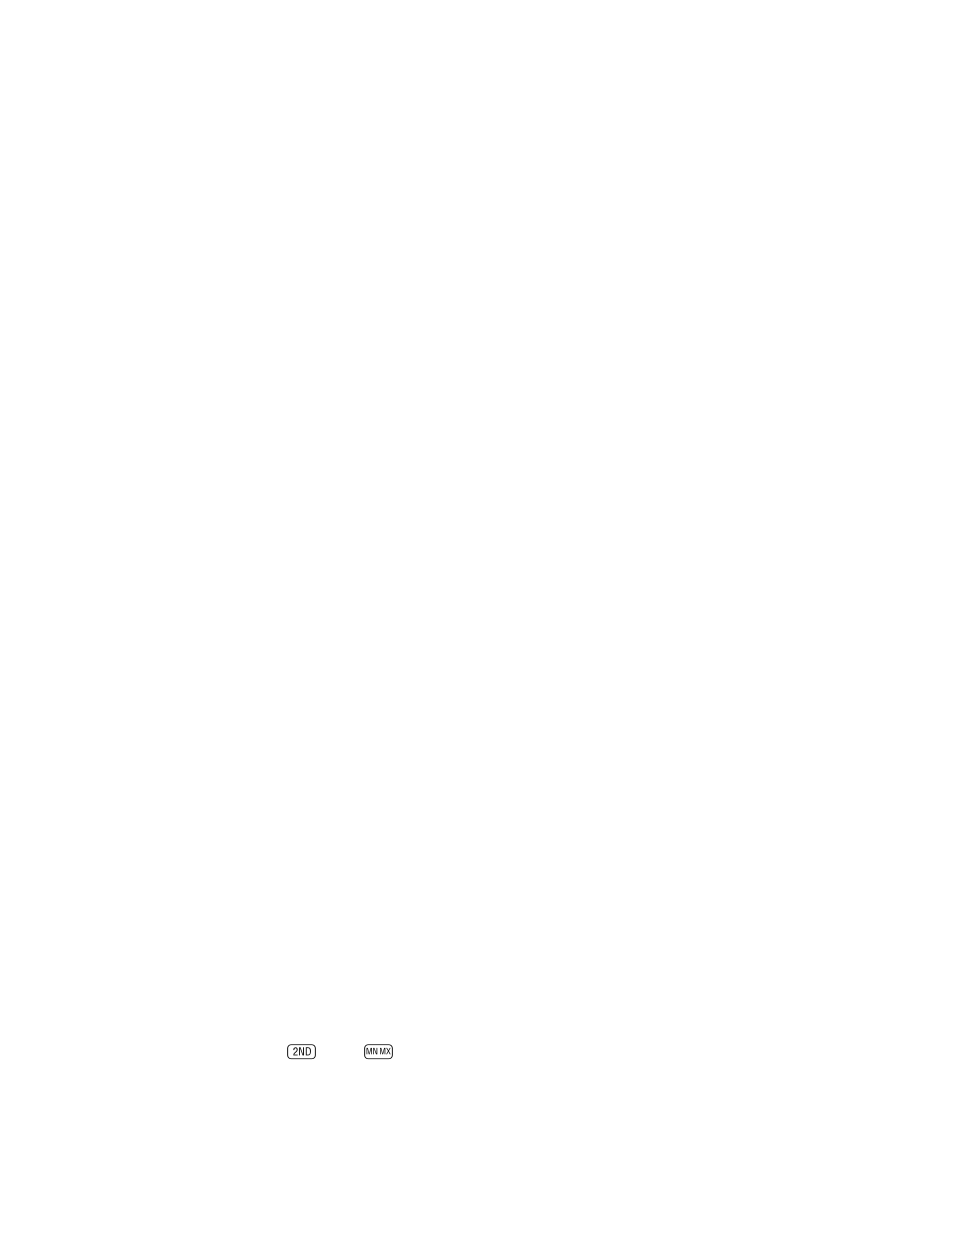 ... Array - fluke 87 iii multimeter manual ebook rh fluke 87 iii multimeter  manual ebook purerose